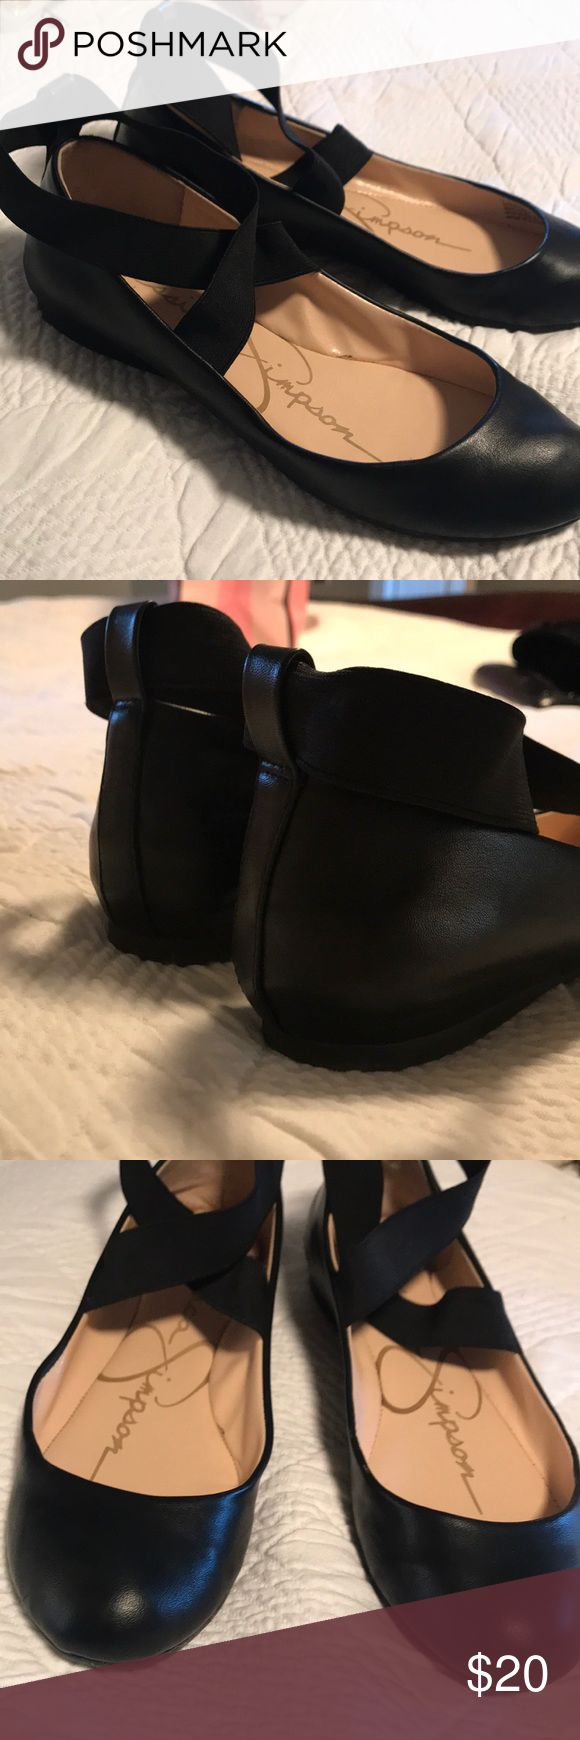 Jessica Simpson Ballet Flats These ballet flats are so fun! Can be worn with leggings or a dress! Super comfy! Jessica Simpson Shoes Flats & Loafers